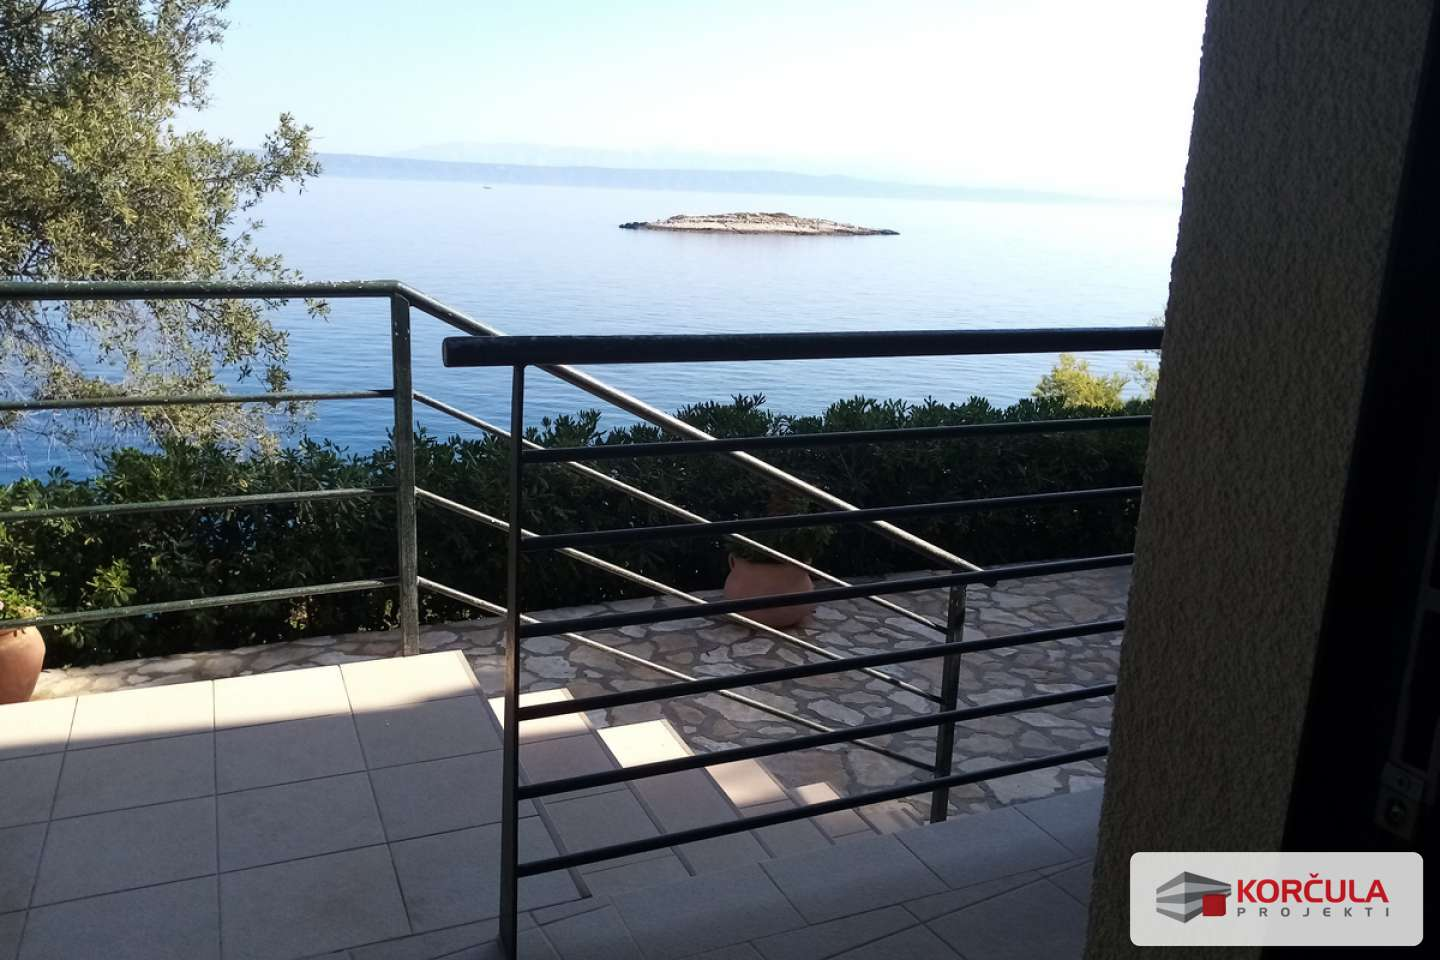 One-bedroom apartment on the ground floor with a beautiful garden and additional facilities available, overlooking Hvar channel